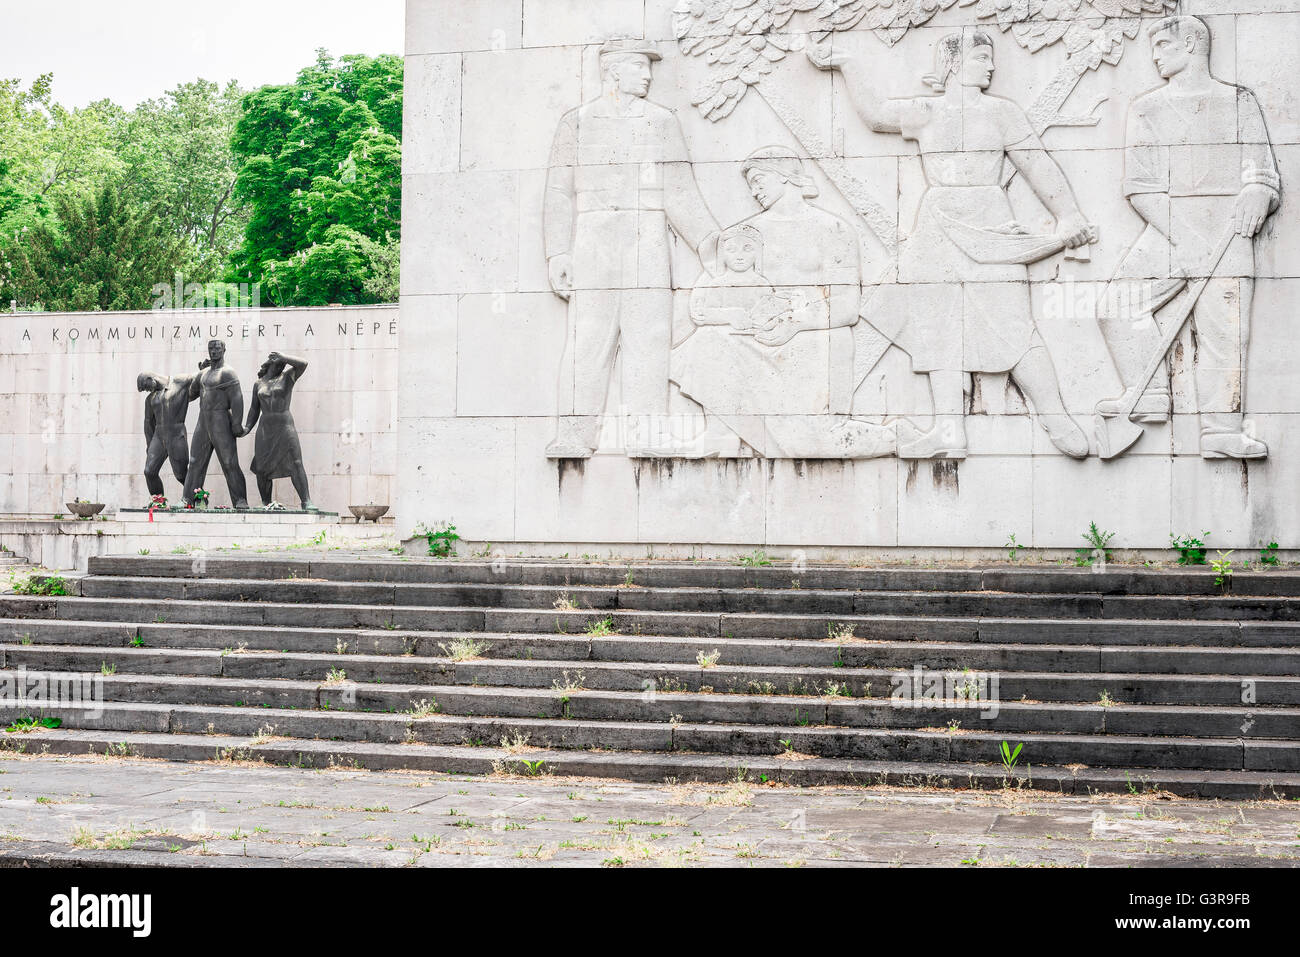 Communist Pantheon Of The Working Class Movement in the Kerepesi Cemetery in the Jozsefvaros area of Budapest, Europe. - Stock Image